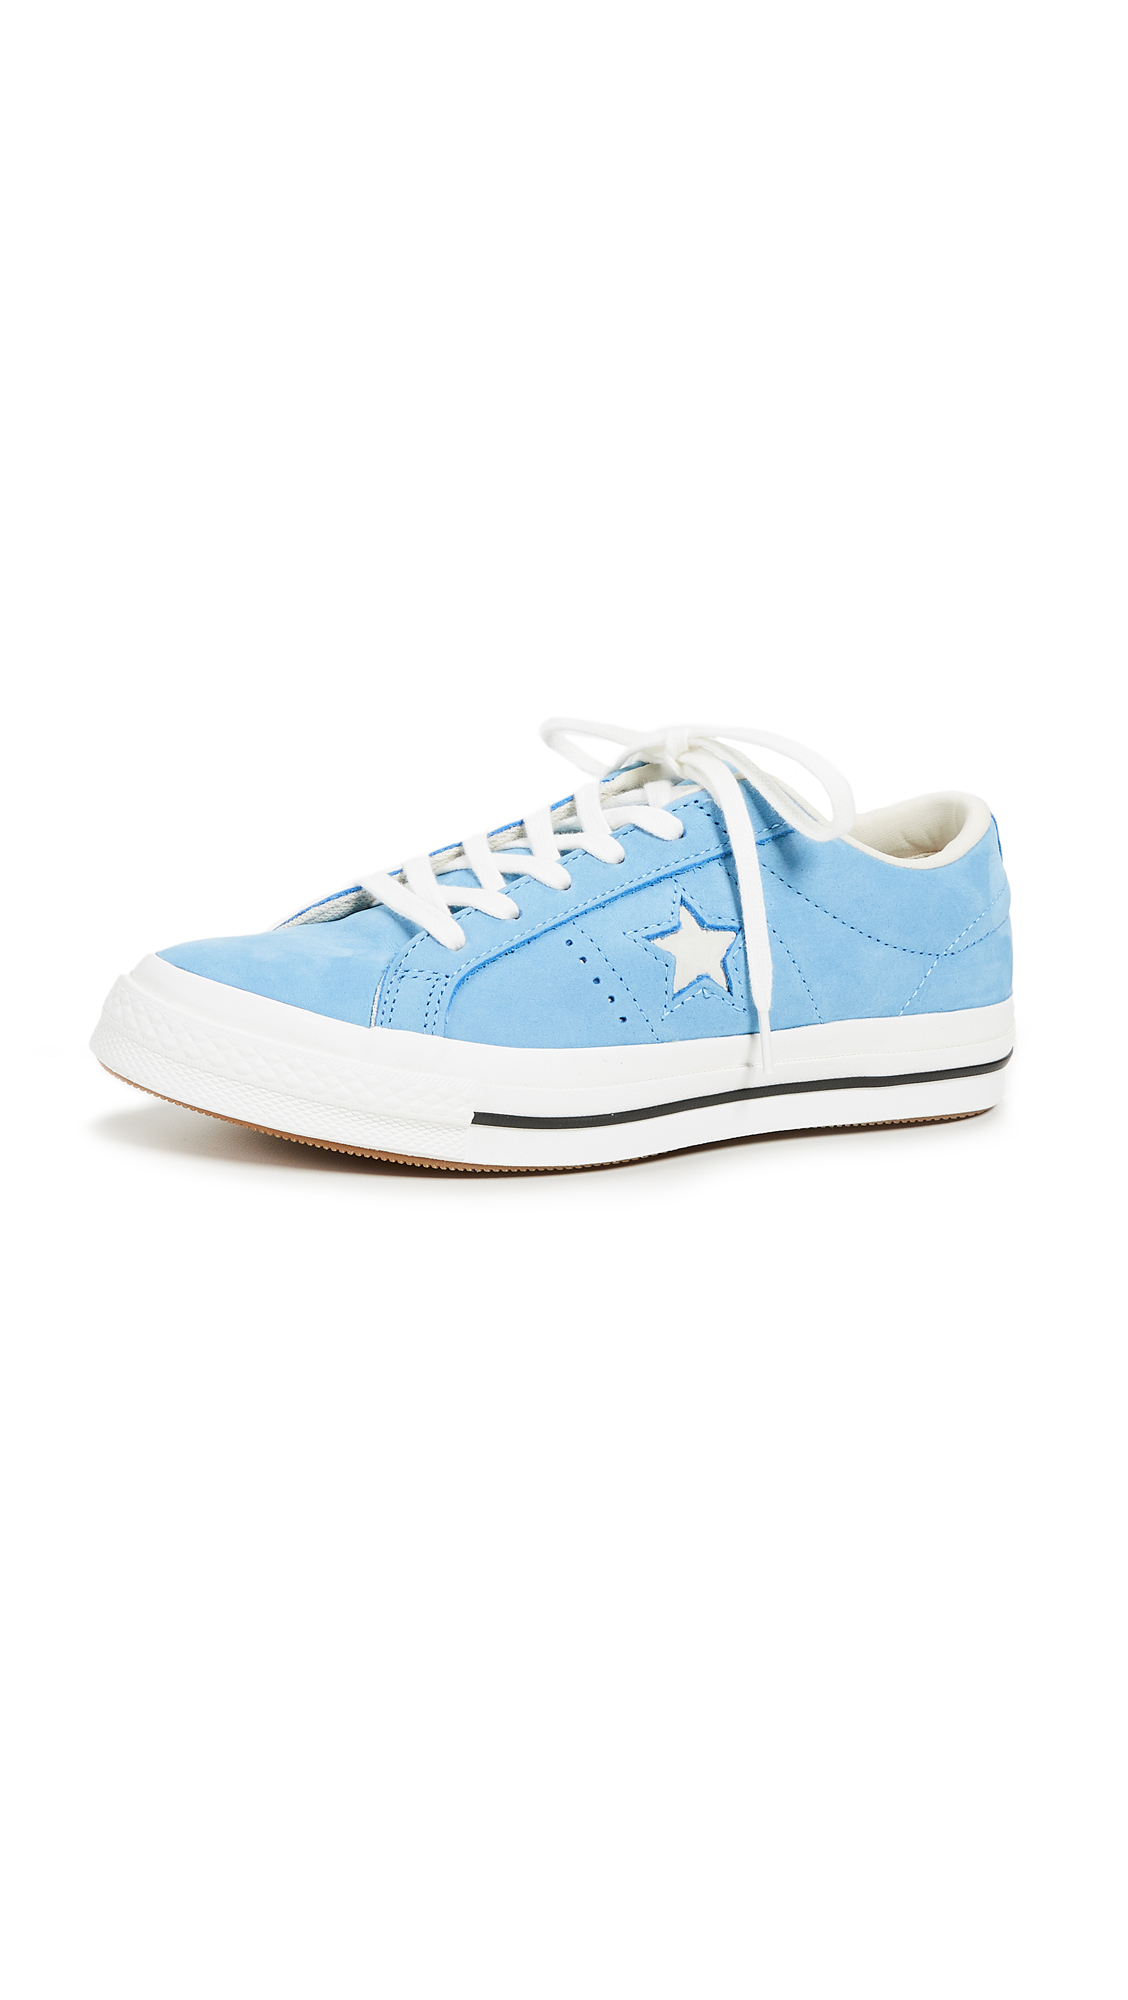 Converse One Star Ox Sneakers - Light Blue/Black